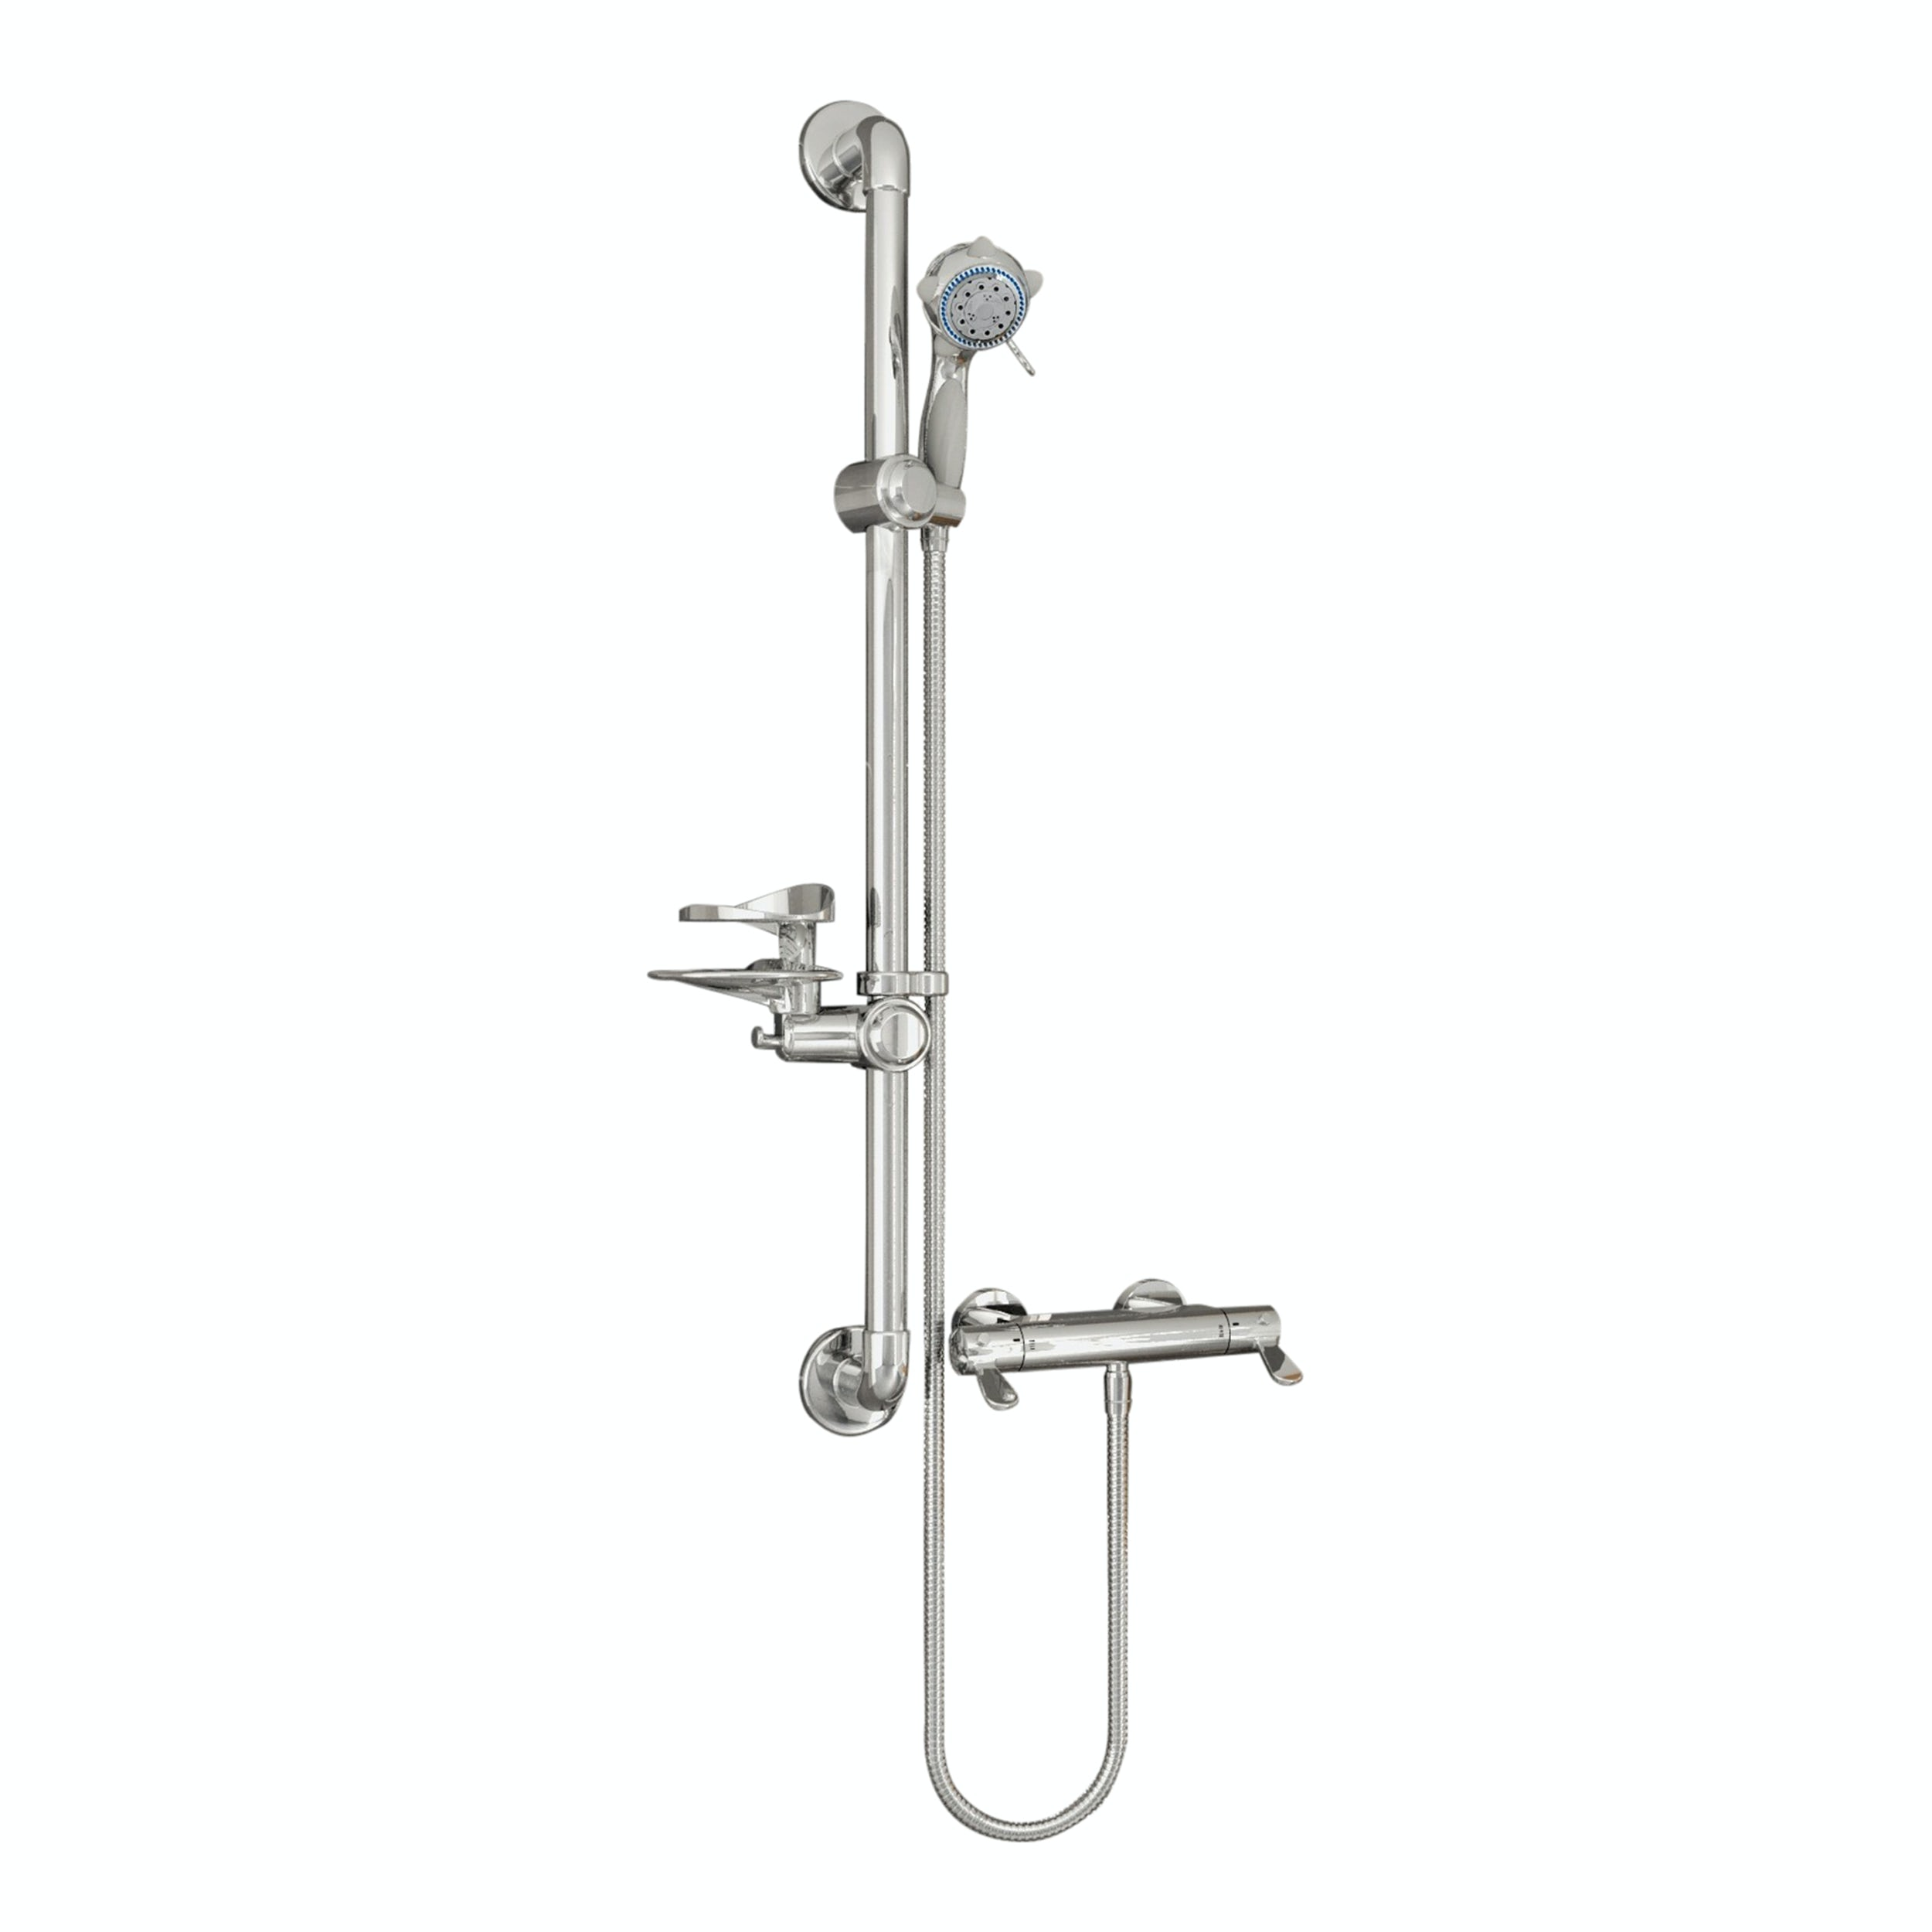 AKW Arka Care thermostatic mixer shower set - Sold by Victoria Plum